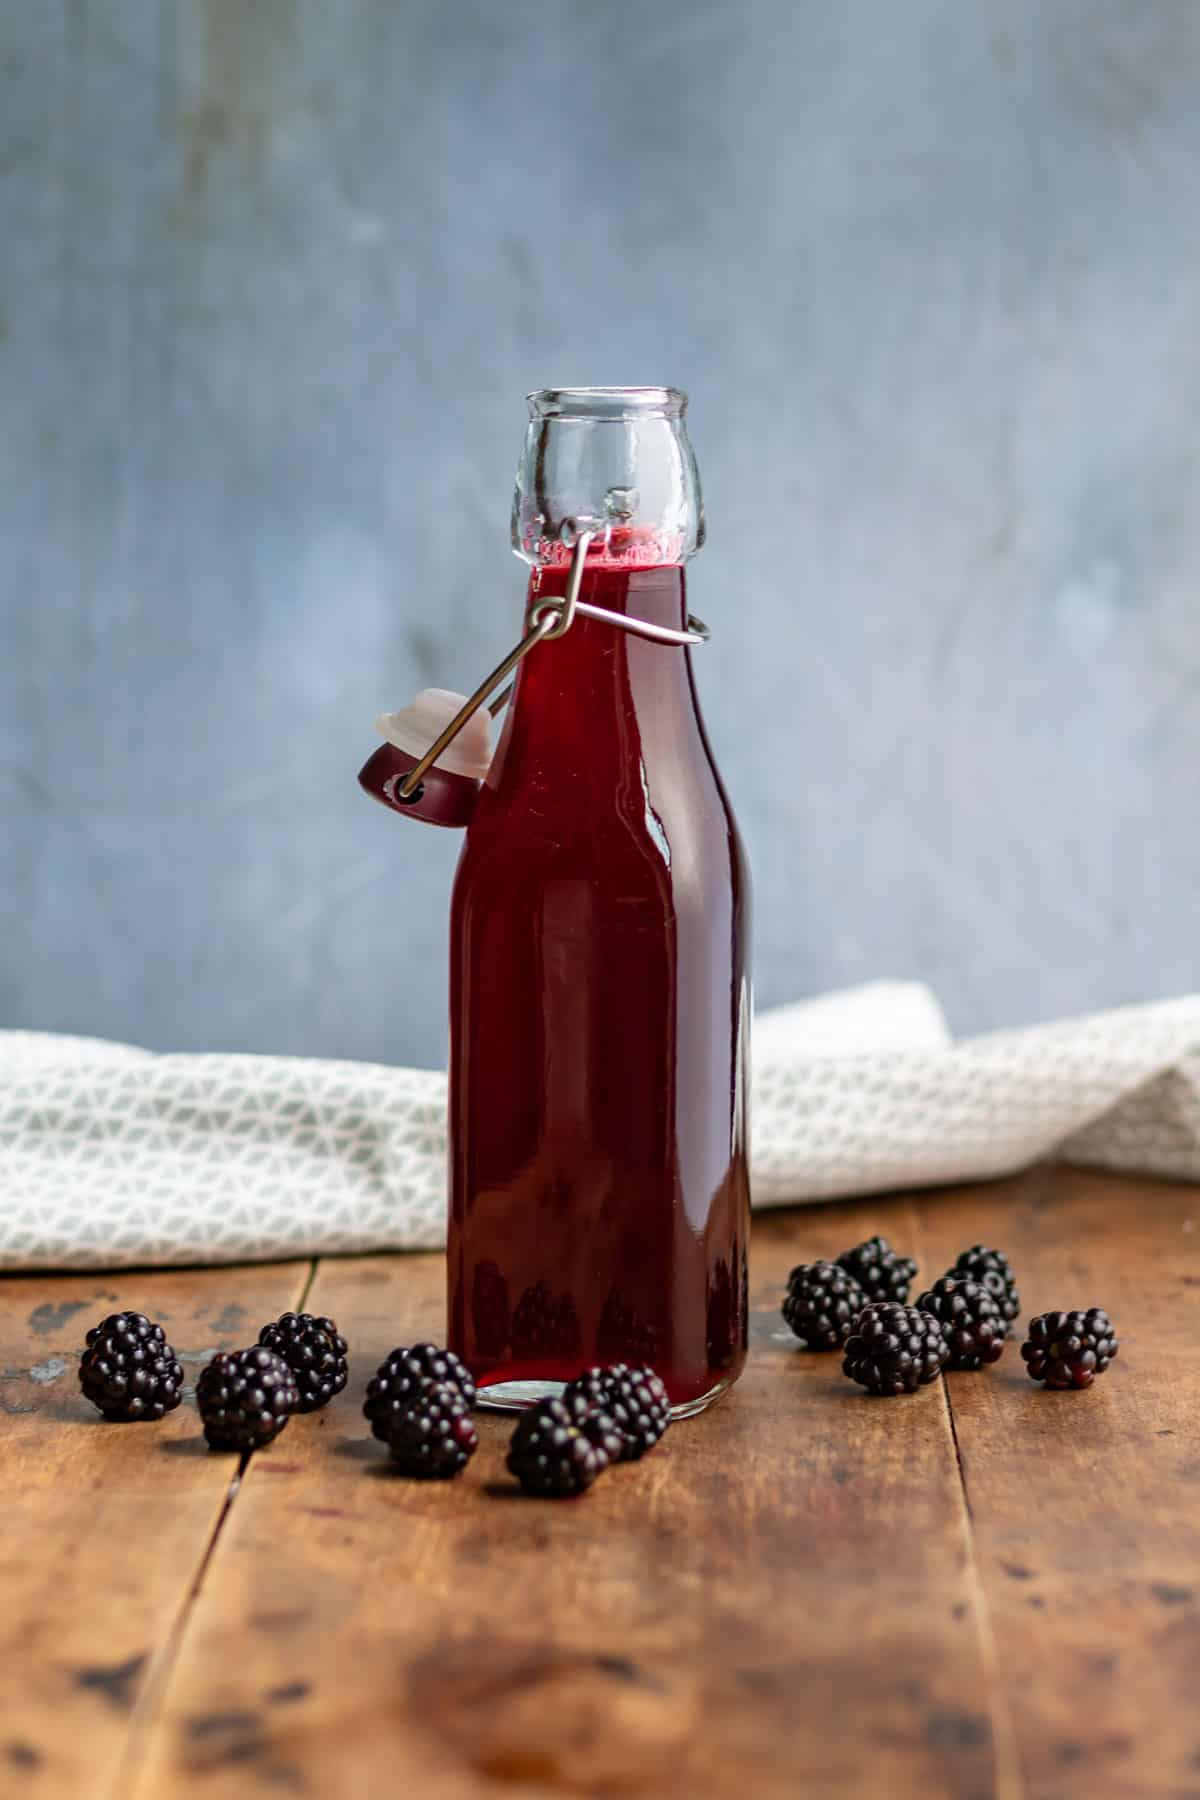 Bottle of blackberry syrup on a wooden table.